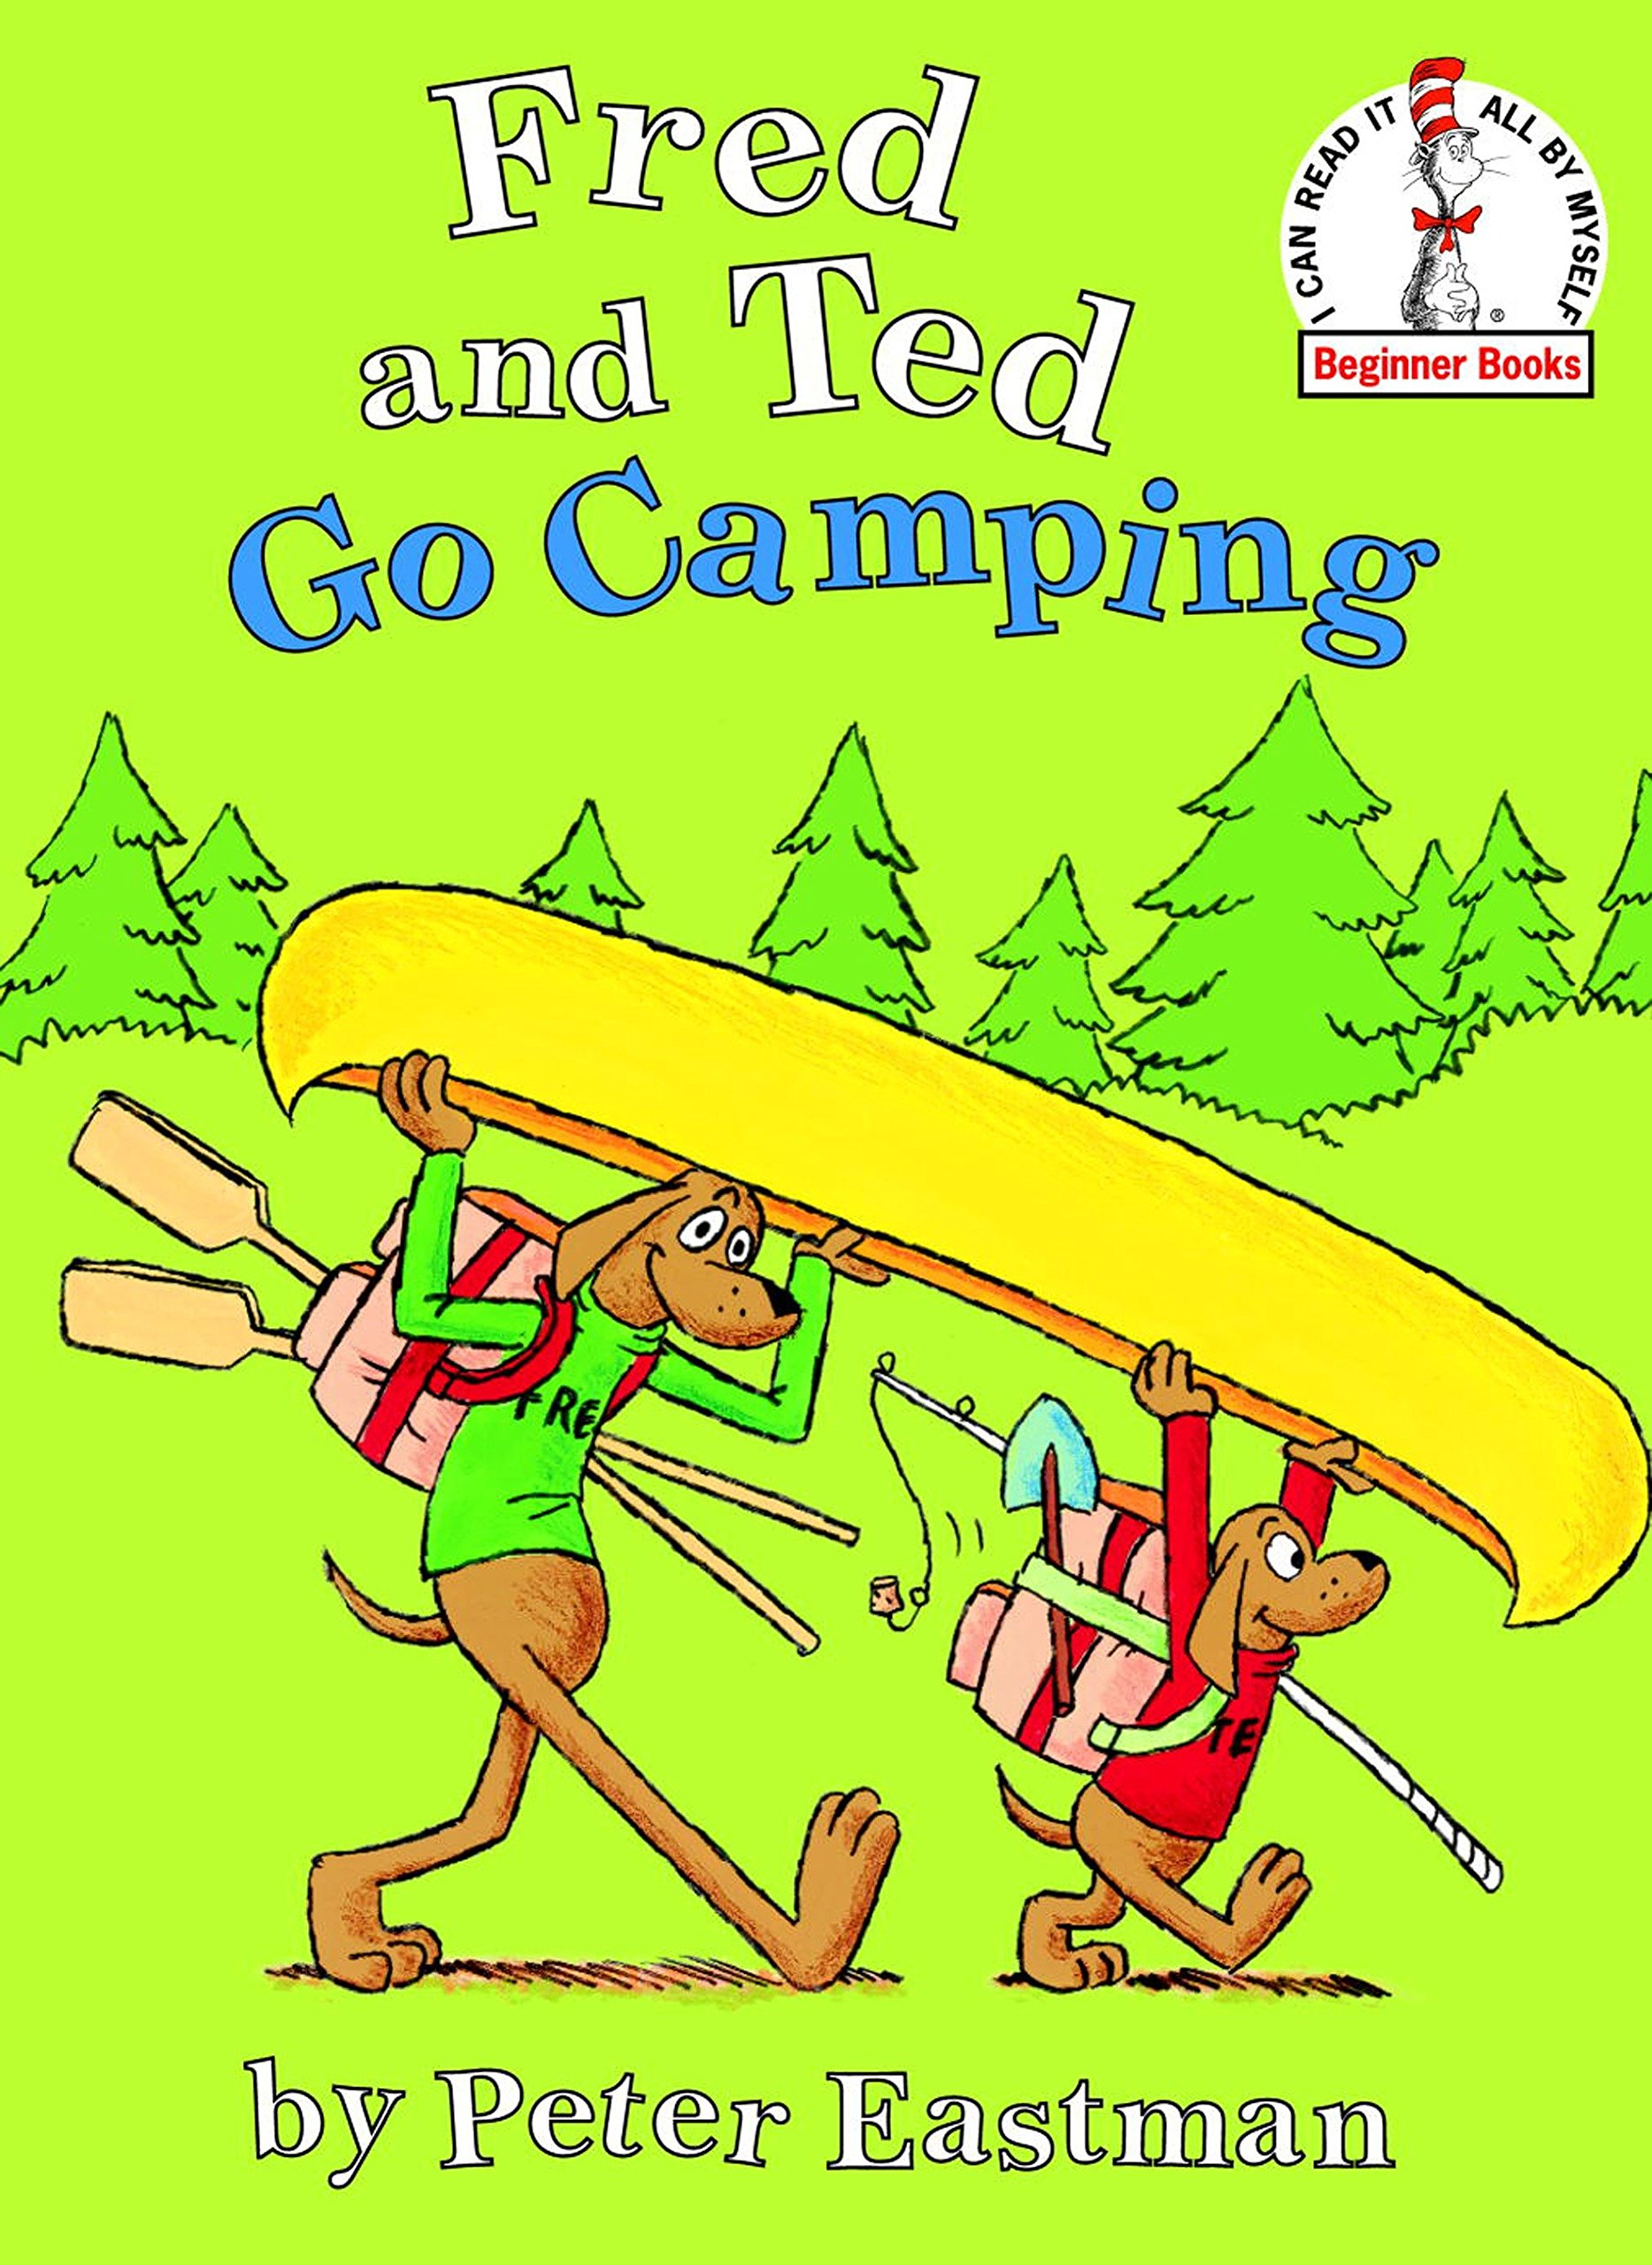 amazon com fred and ted go camping beginner books r